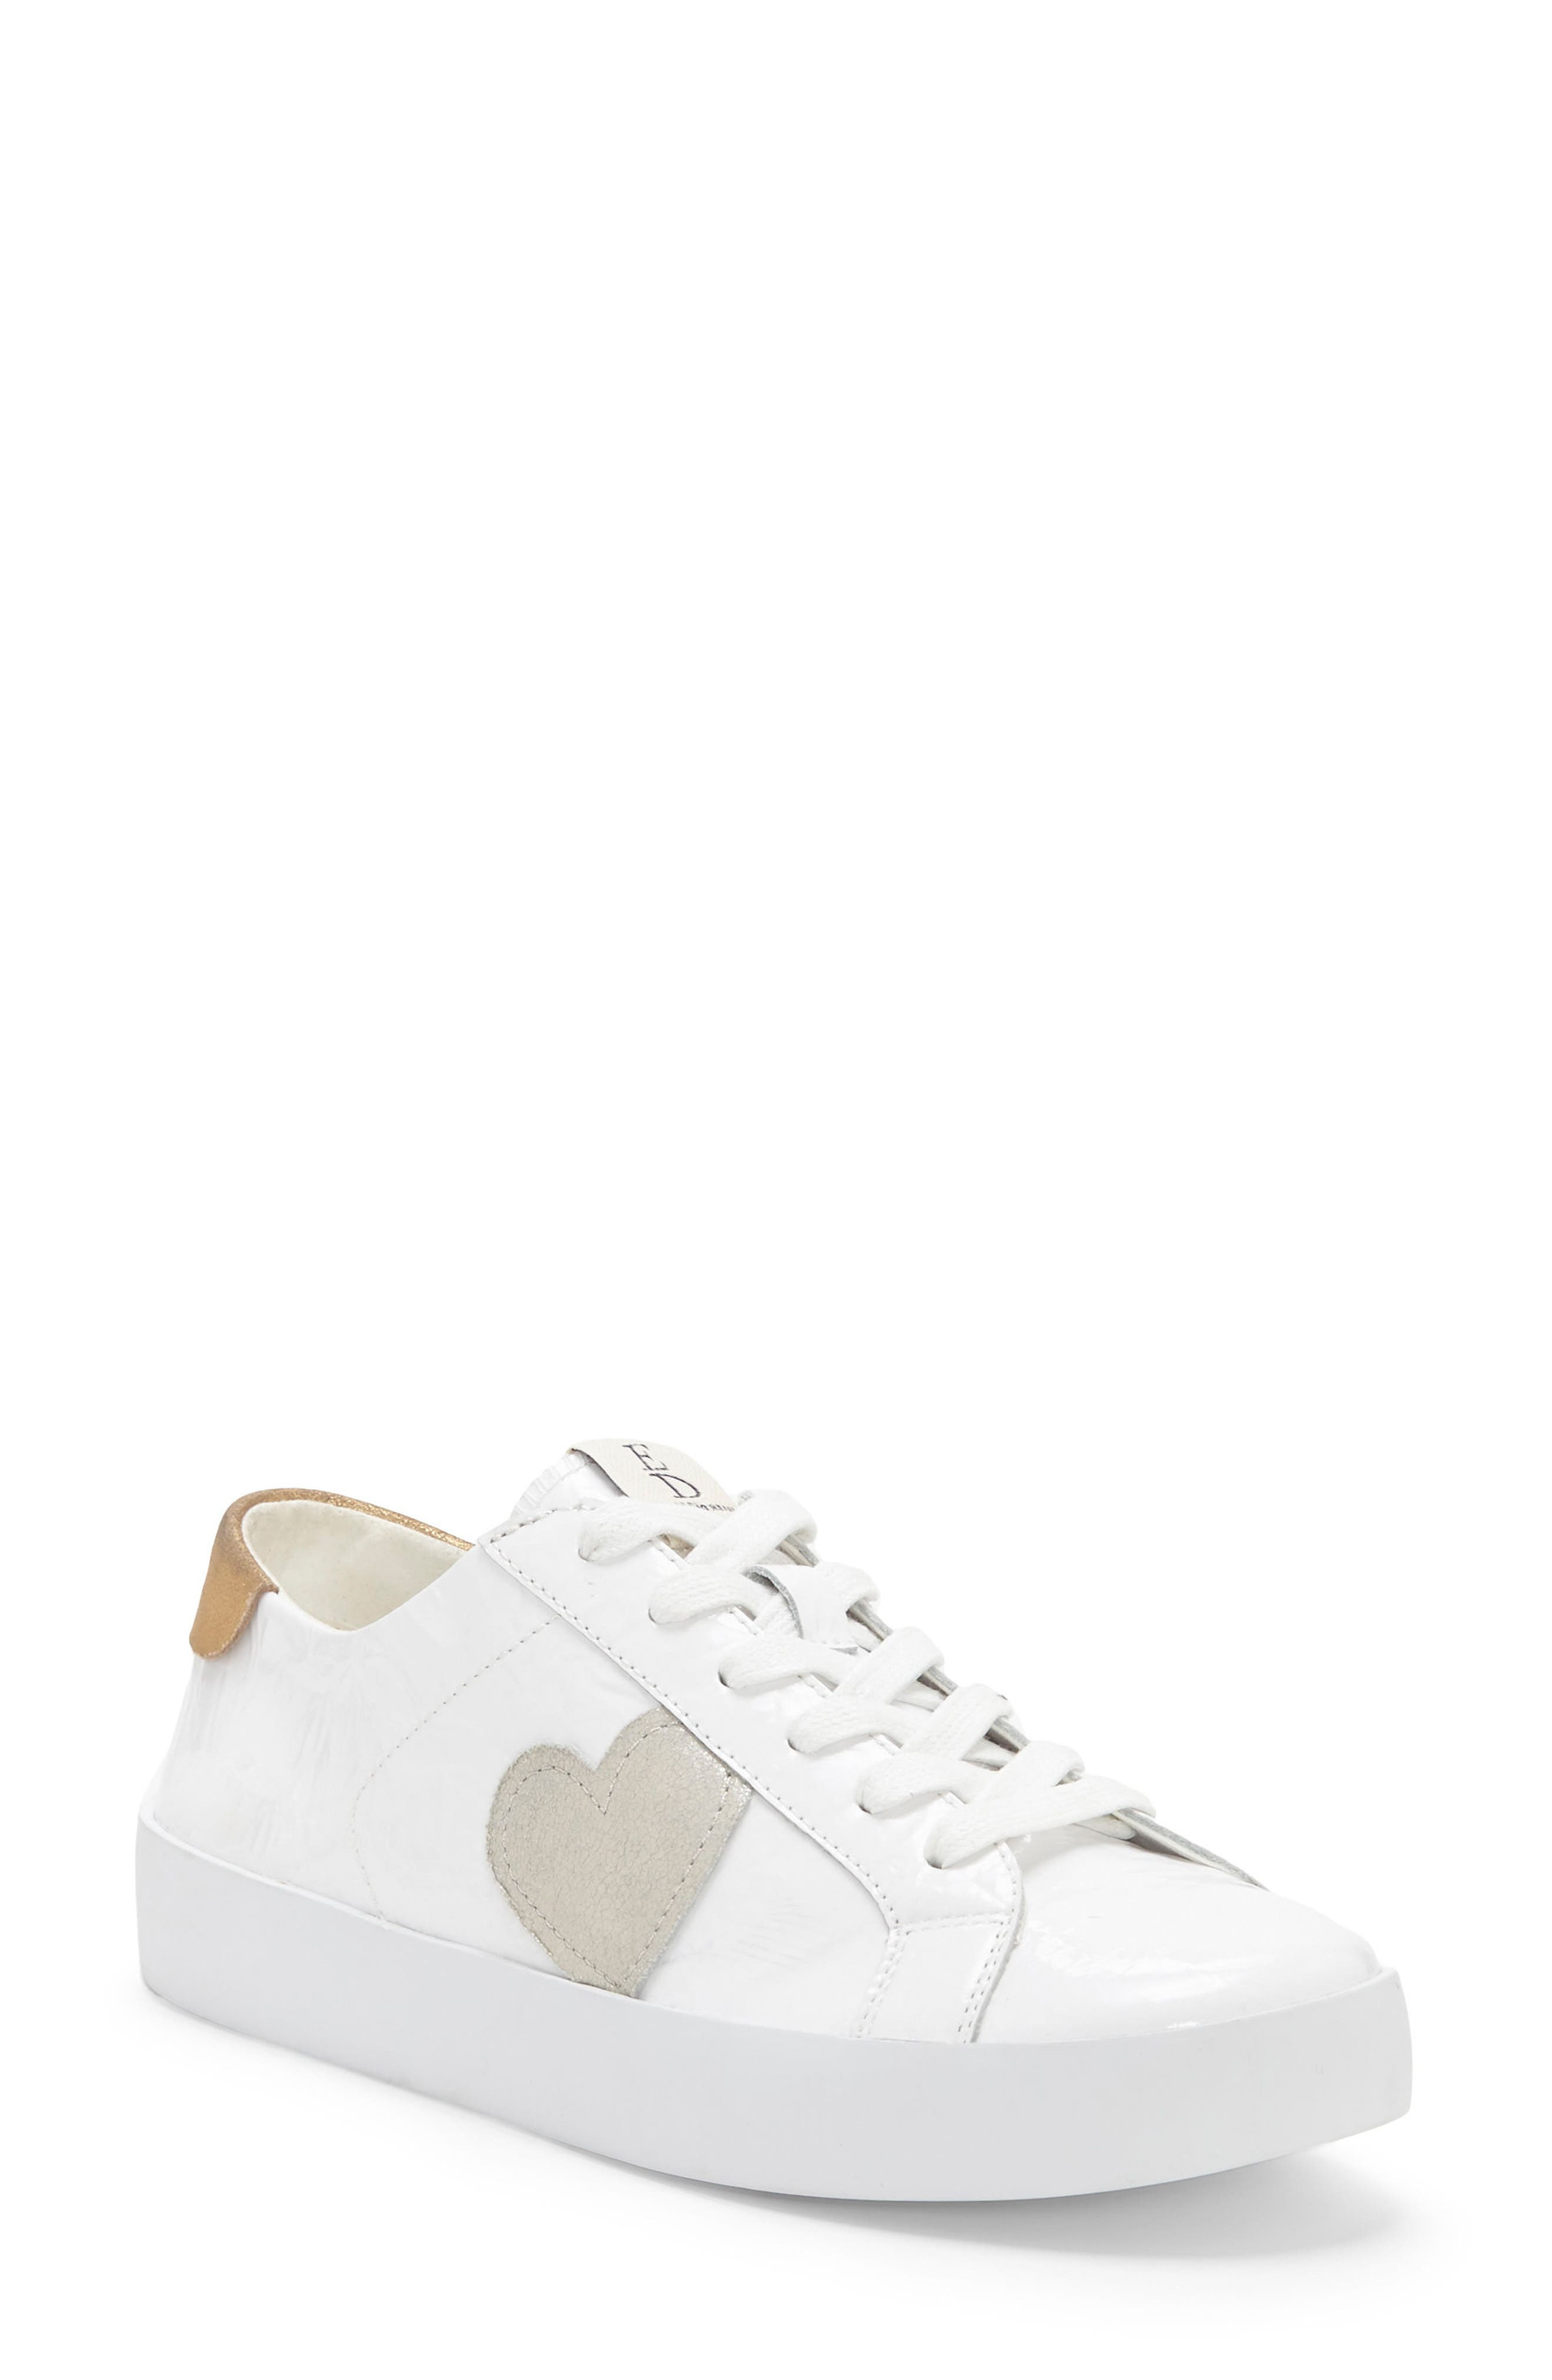 Gillen Sneaker,                             Main thumbnail 1, color,                             Pure White Crinkled Patent